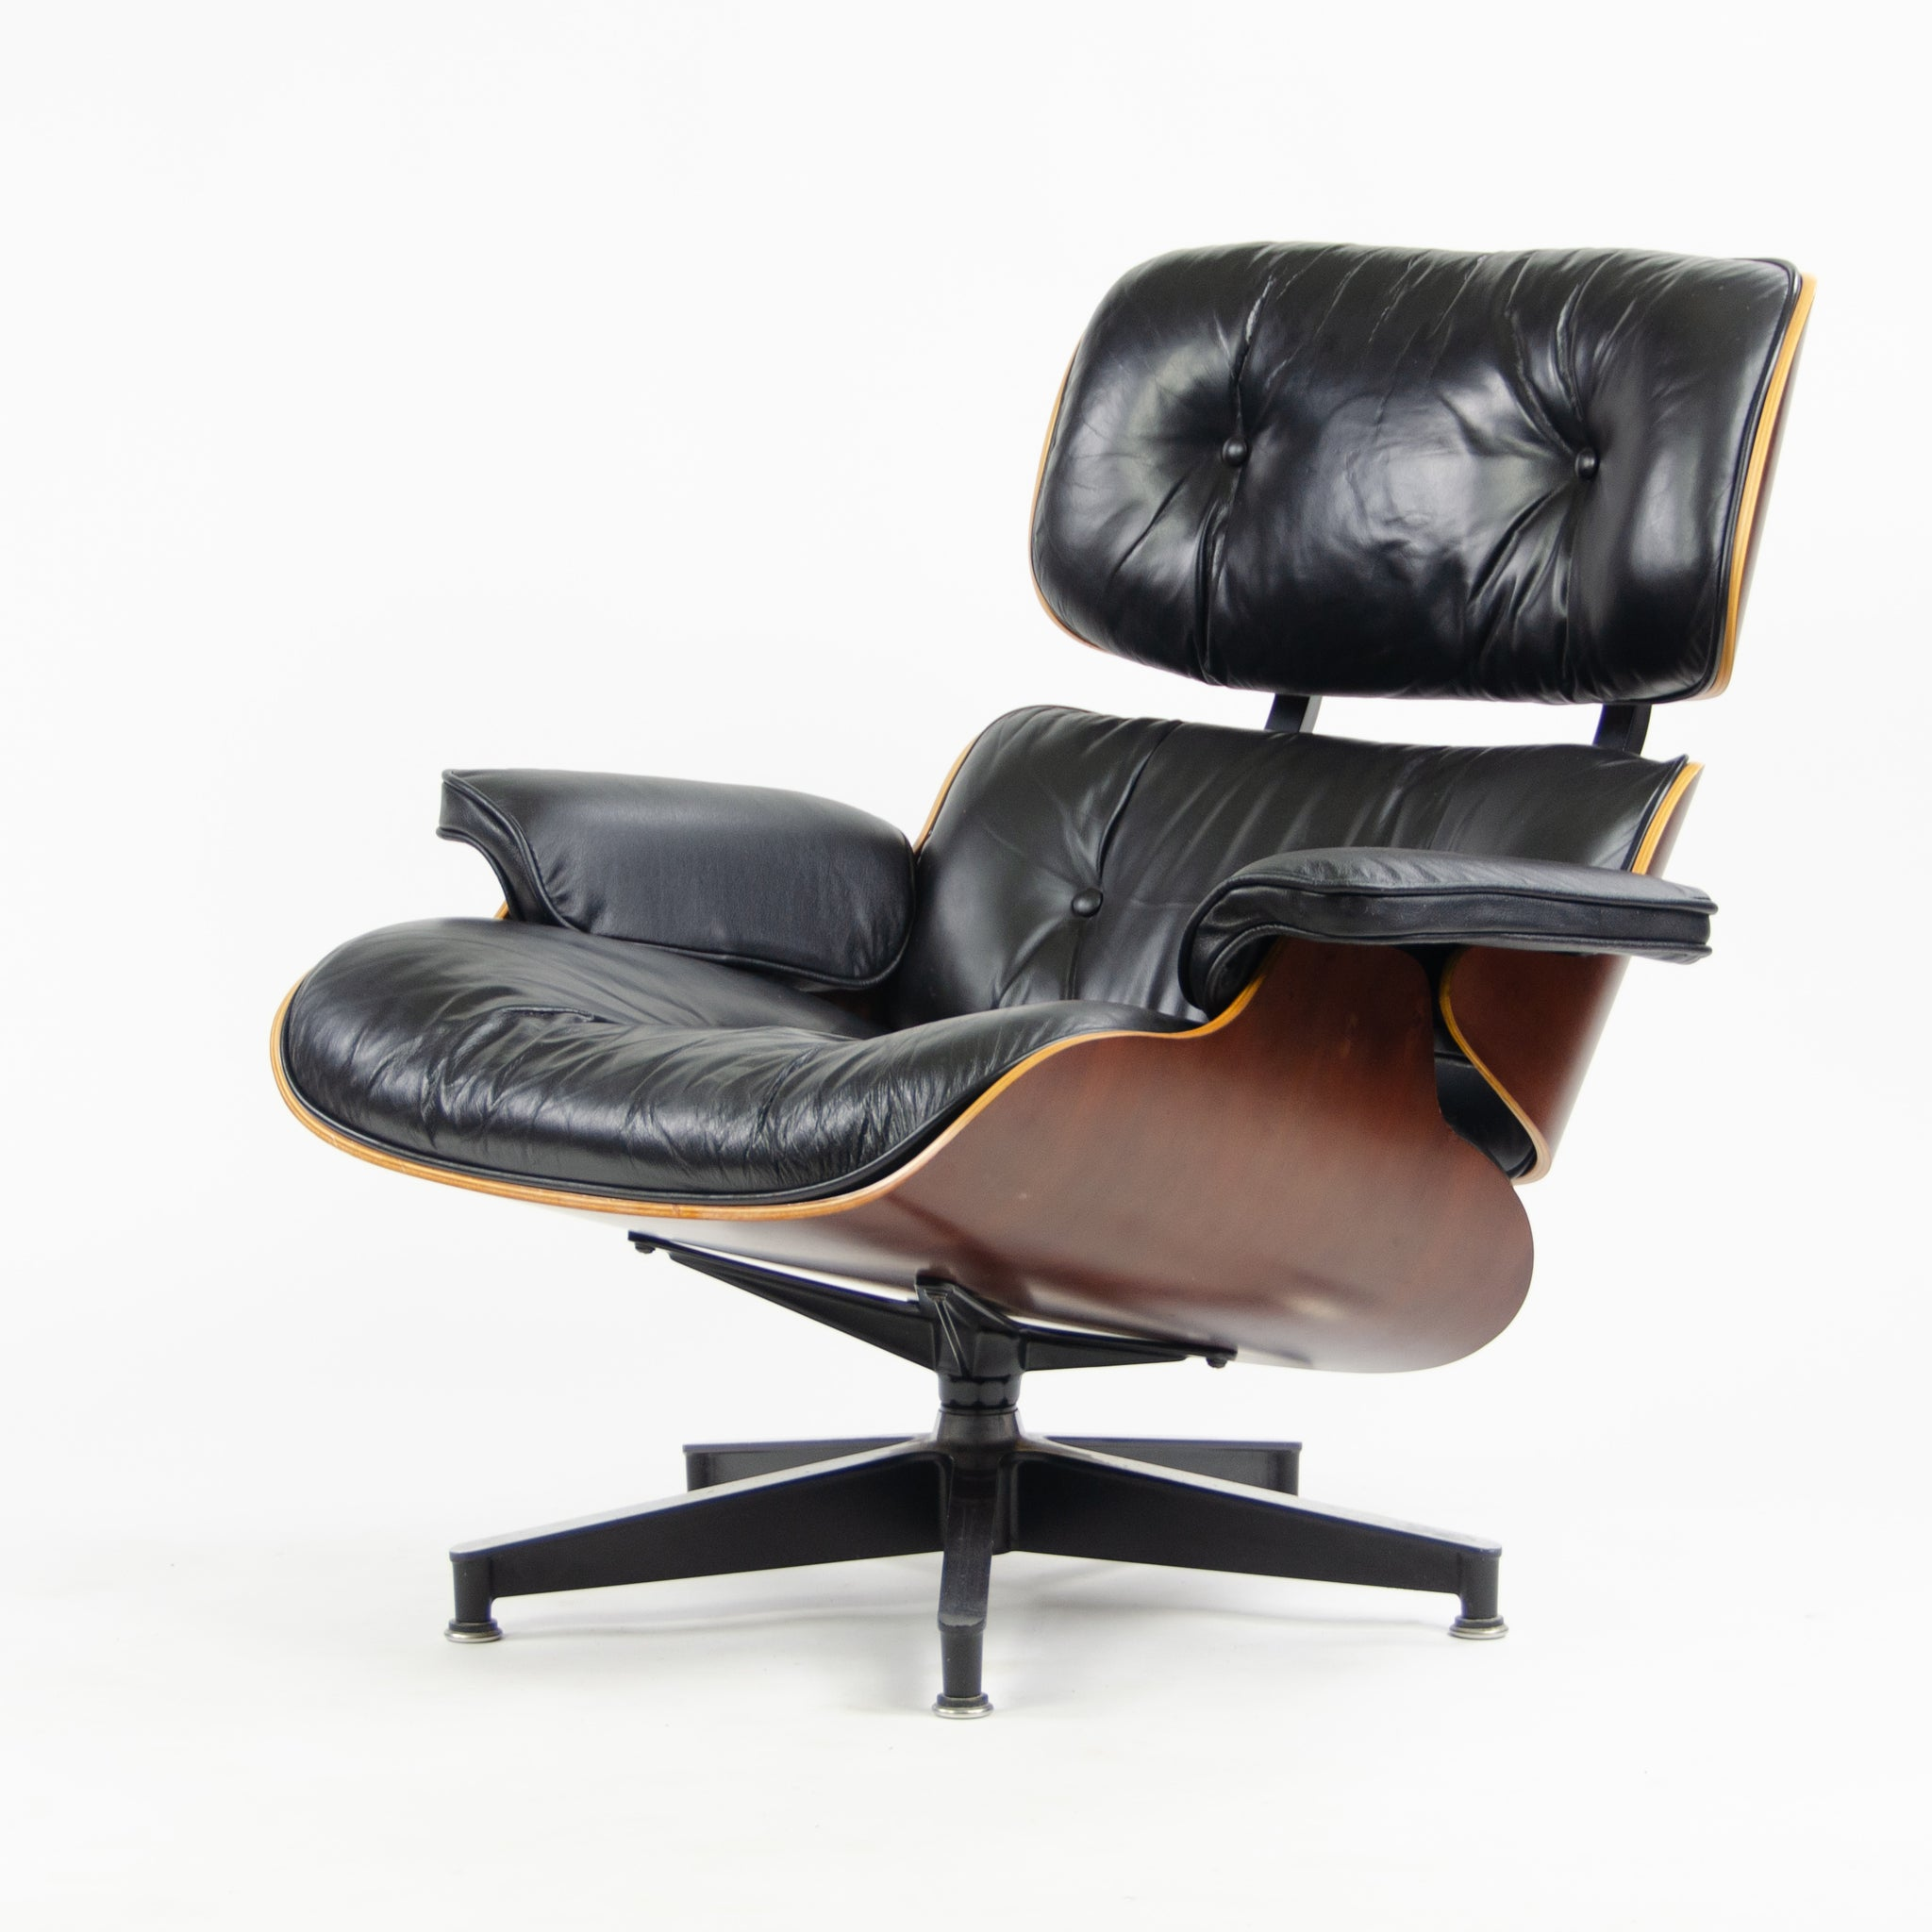 SOLD 2001 Herman Miller Eames Lounge Chair & Ottoman Cherry 670 671 Black Leather